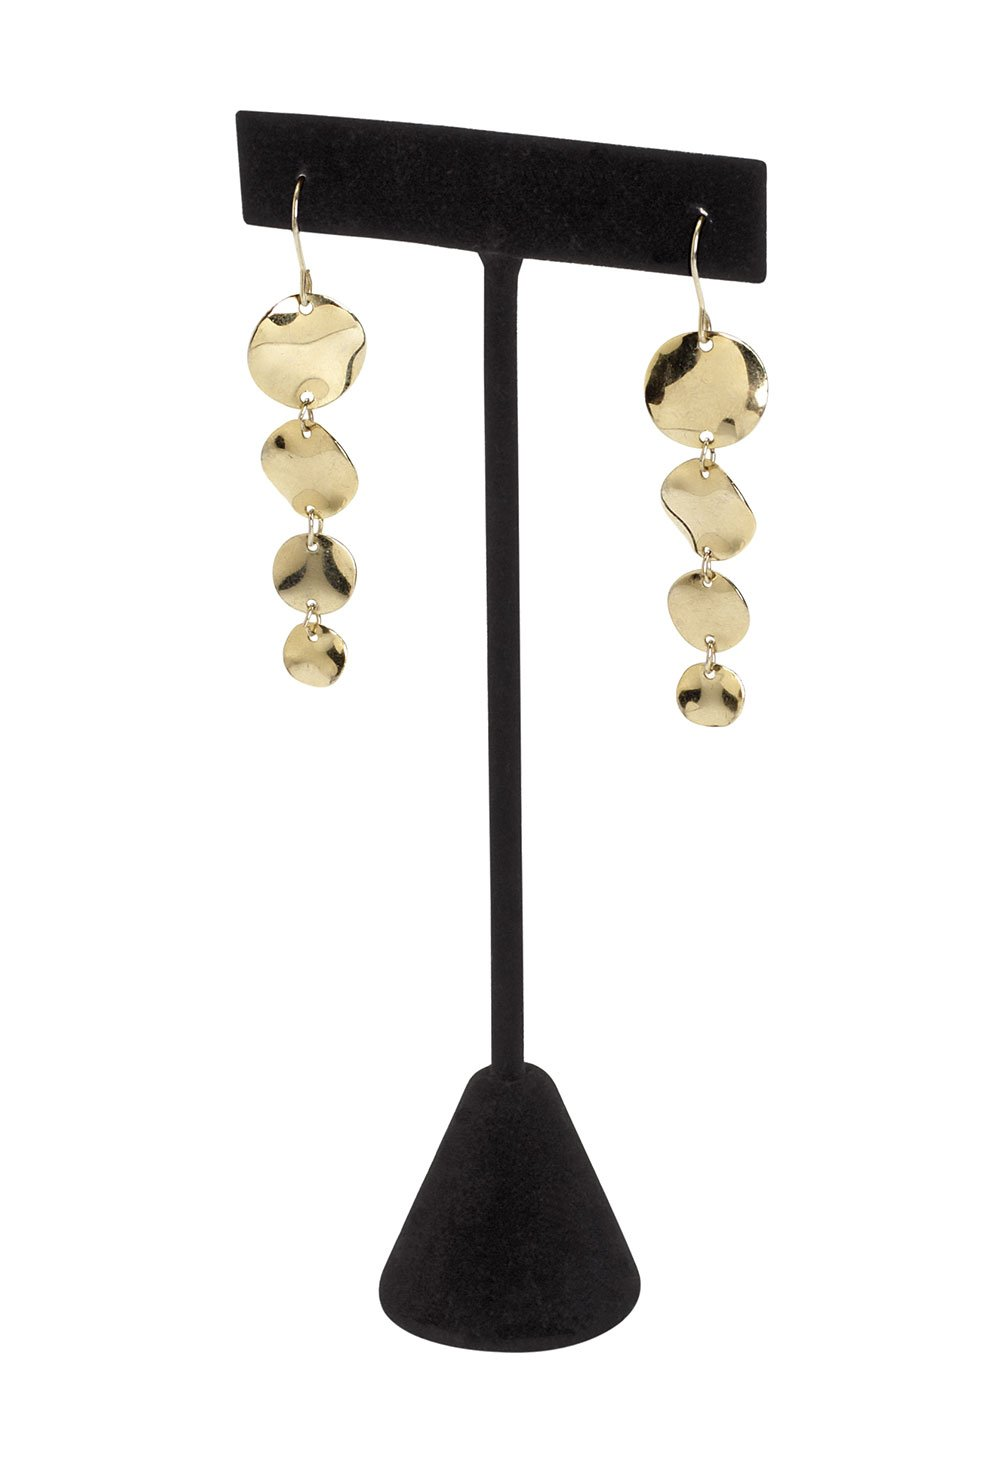 SSWBasics Black Velvet Earring T-Bar Display - Pack of 50